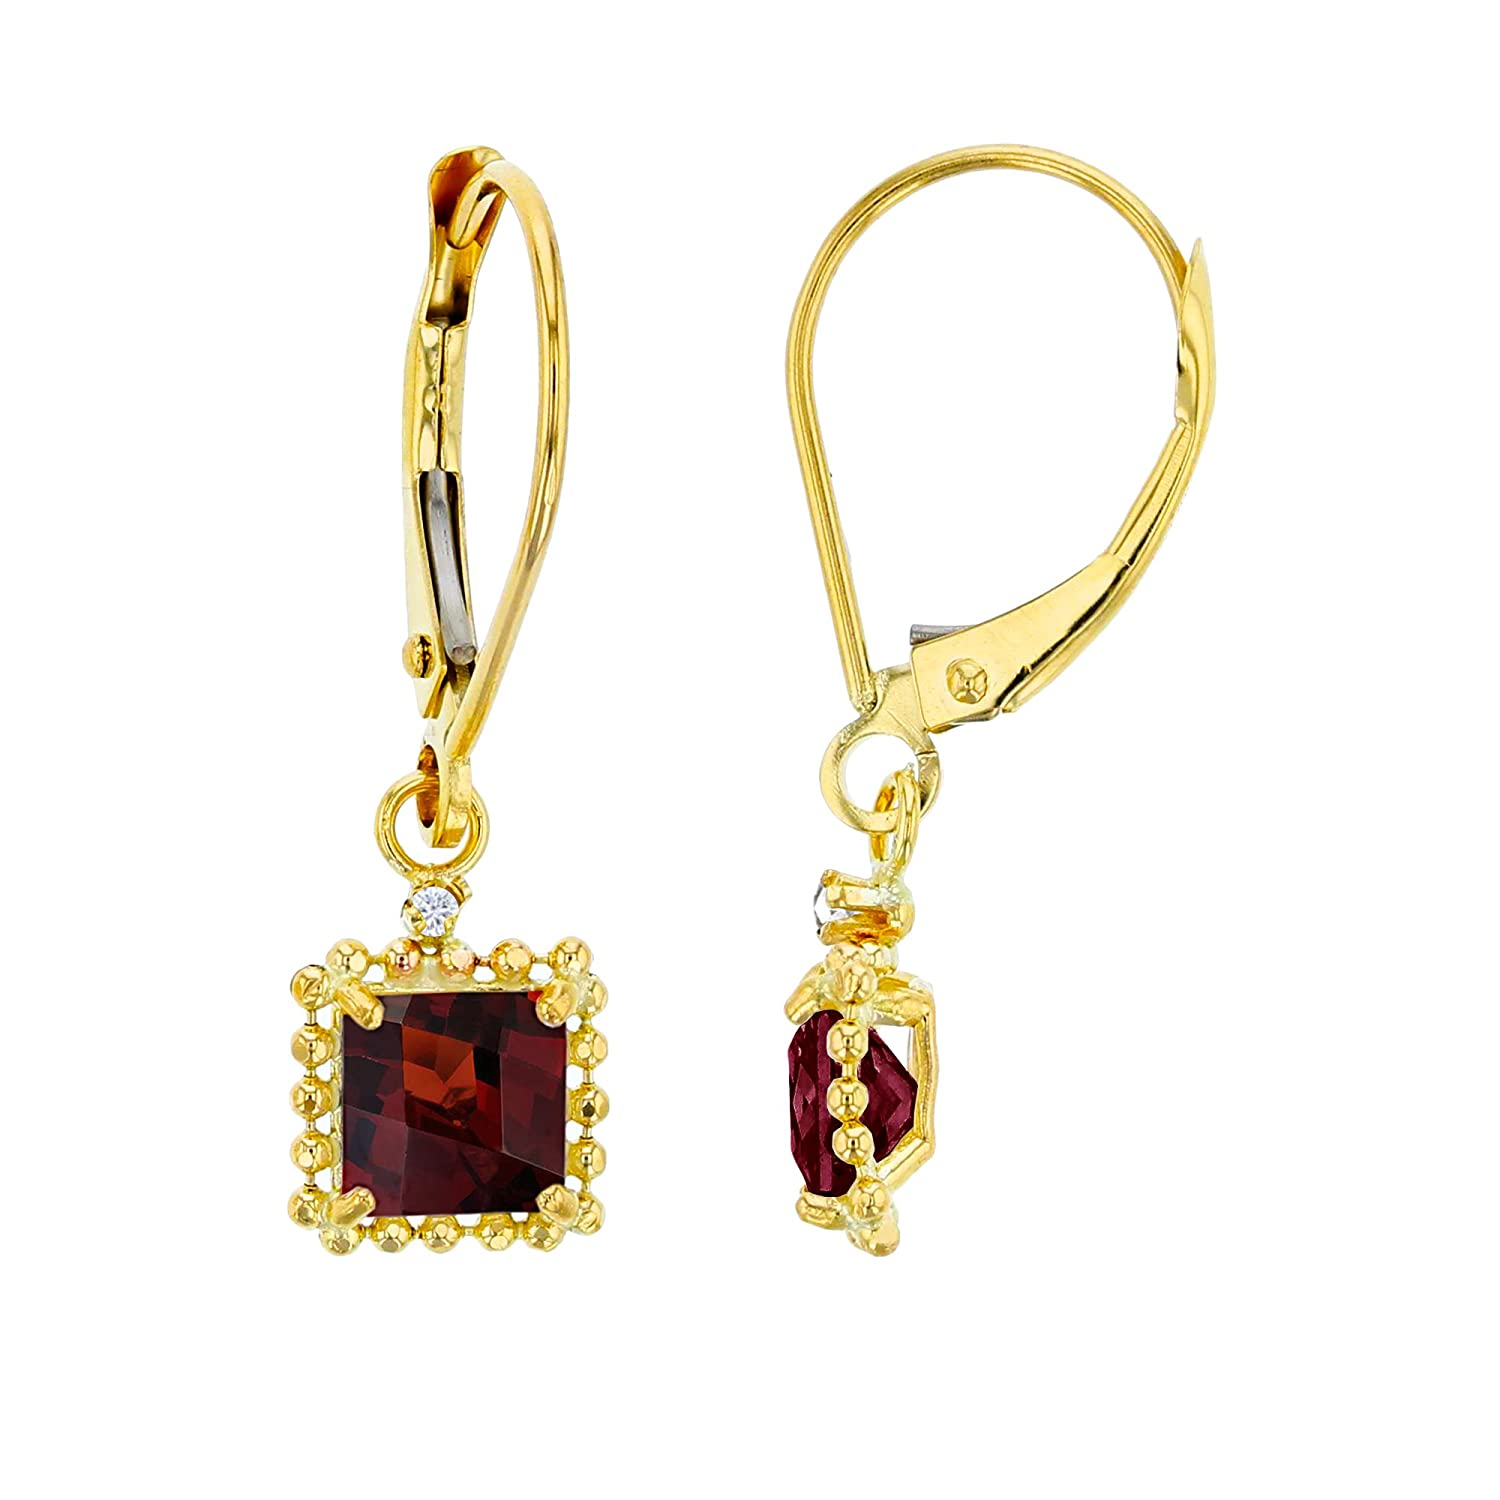 10K Yellow Gold 1.25mm Round Created White Sapphire /& 5mm Square Gemstone Bead Frame Drop Leverback Earring